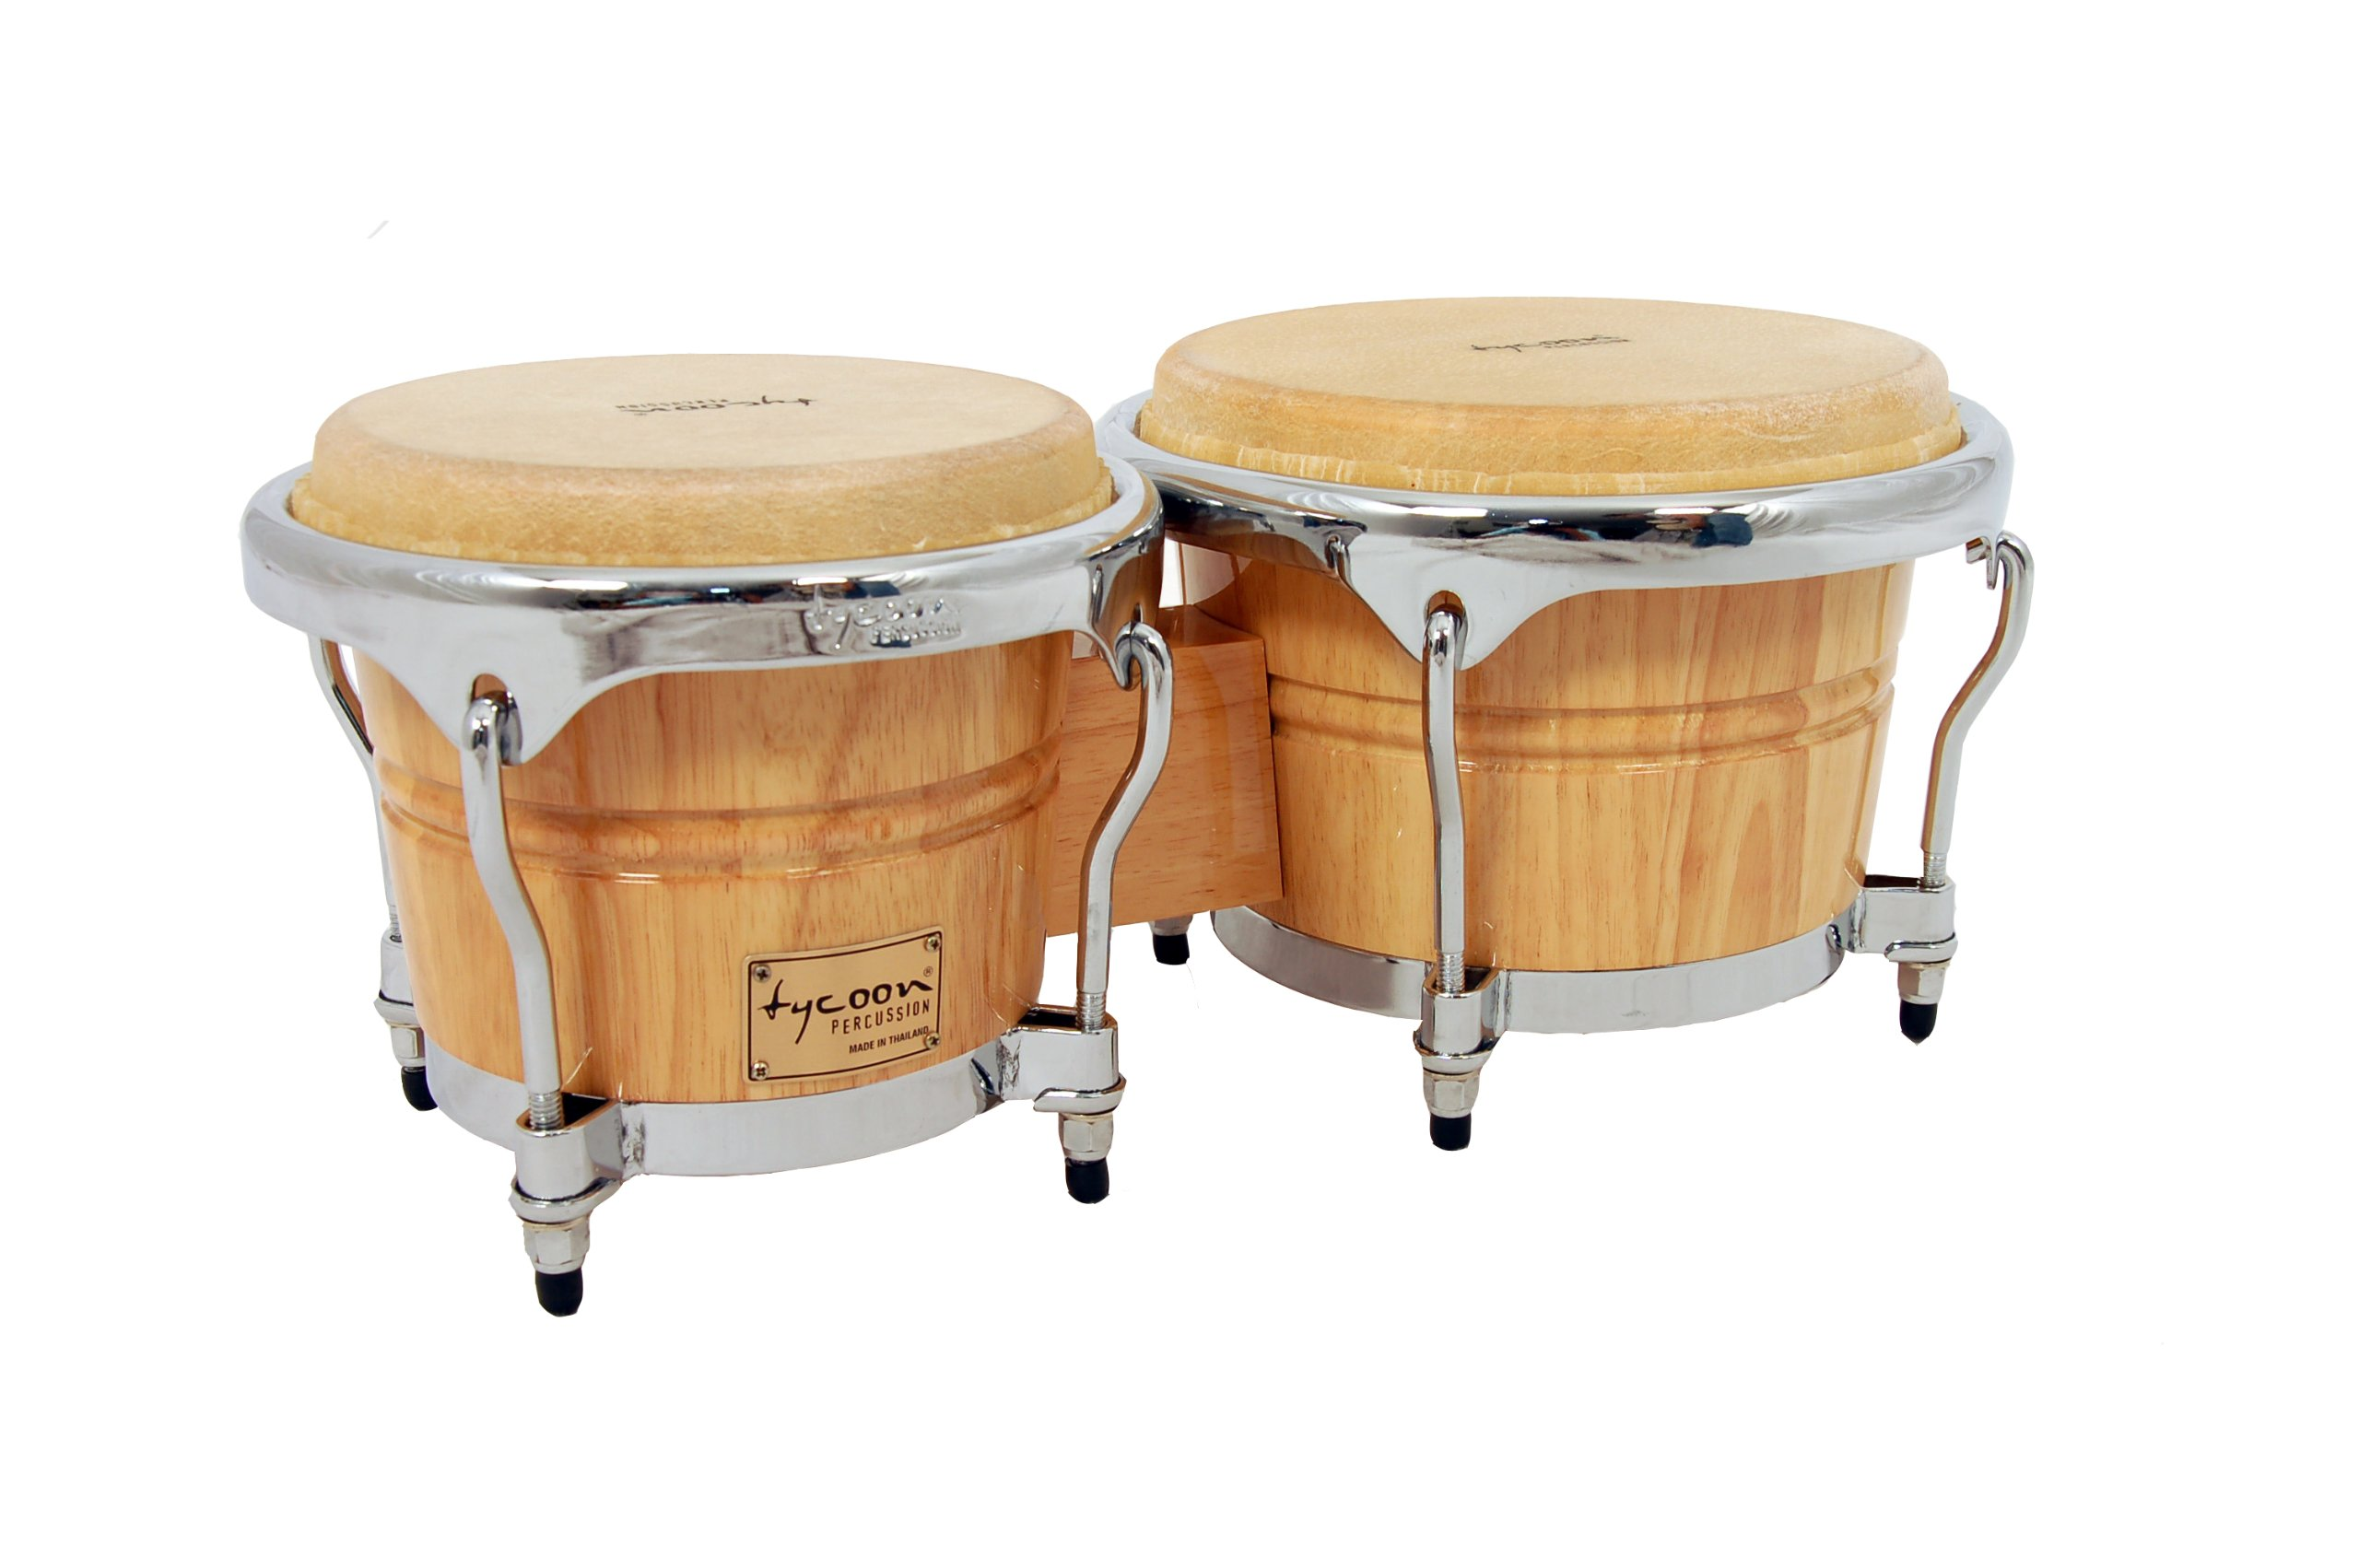 Tycoon Percussion 7 Inch & 8 1/2 Inch Concerto Series Bongos - Natural Finish